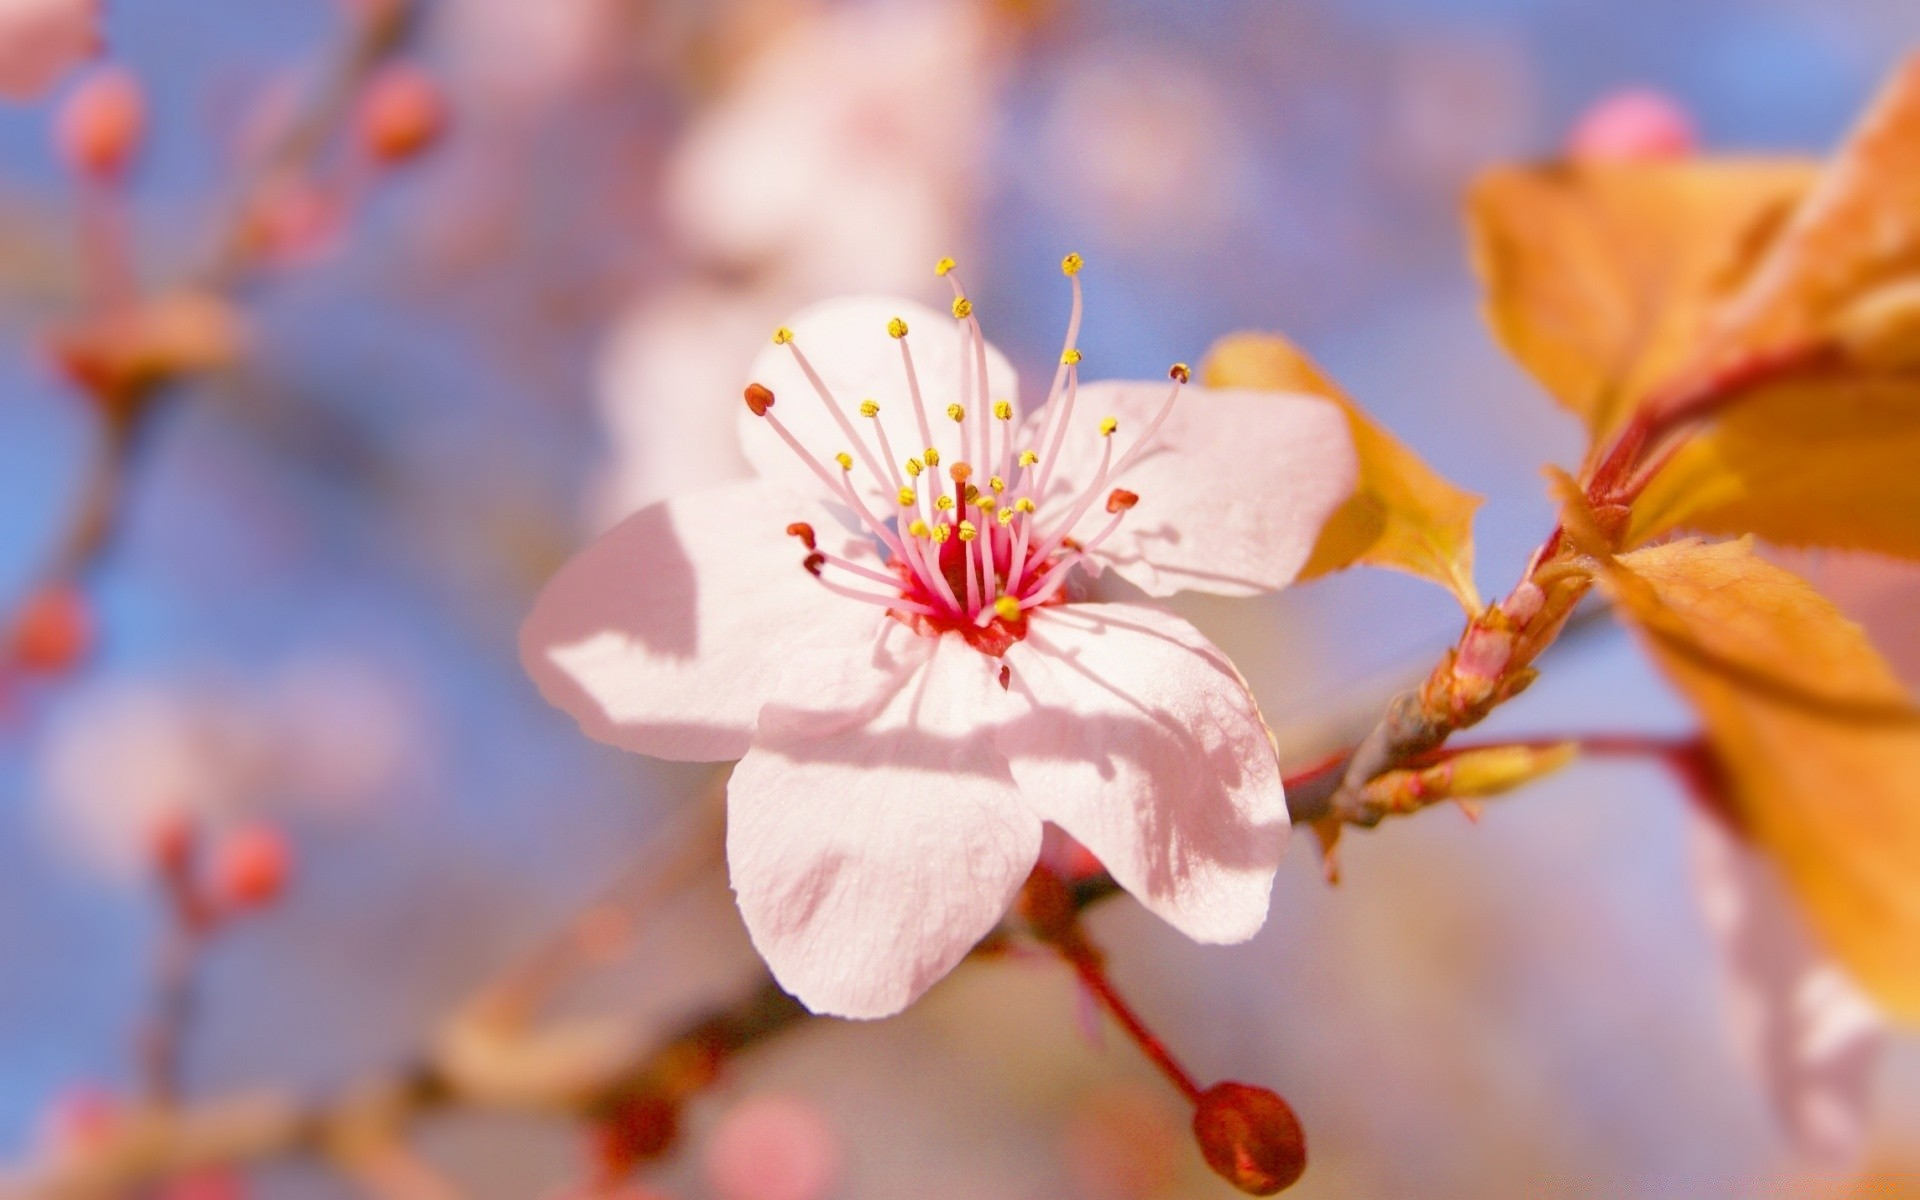 flowers nature flower flora leaf branch cherry garden outdoors tree season bright blur petal color growth blooming summer close-up bud